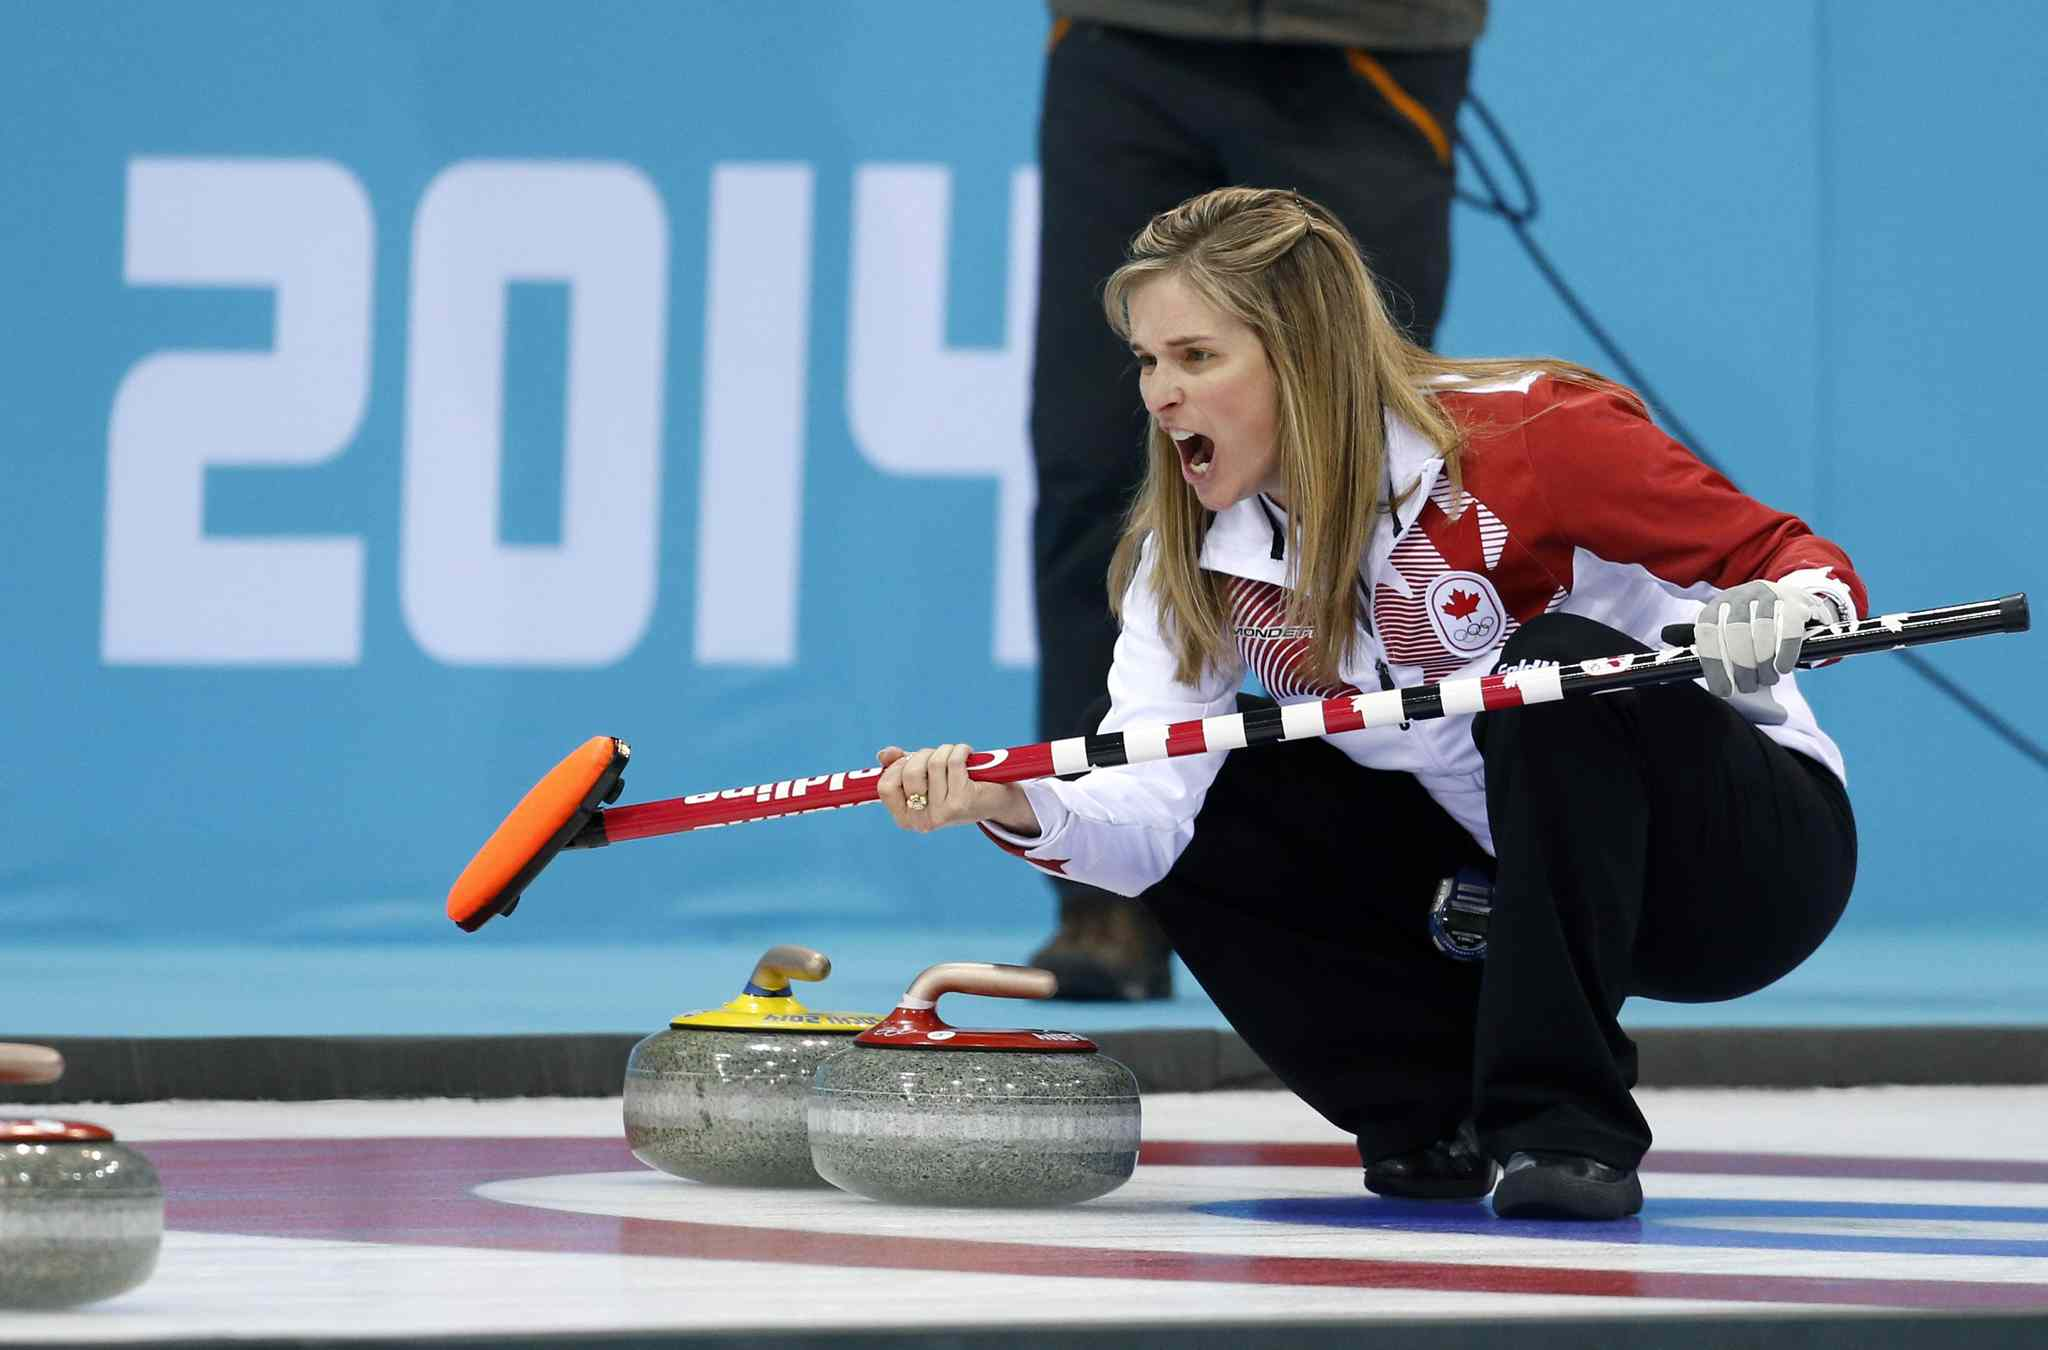 Canada's skip Jennifer Jones during the women's curling semifinal game against Britain at the 2014 Winter Olympics, Wednesday, in Sochi, Russia. Canada defeated Britain and advances to the finals.